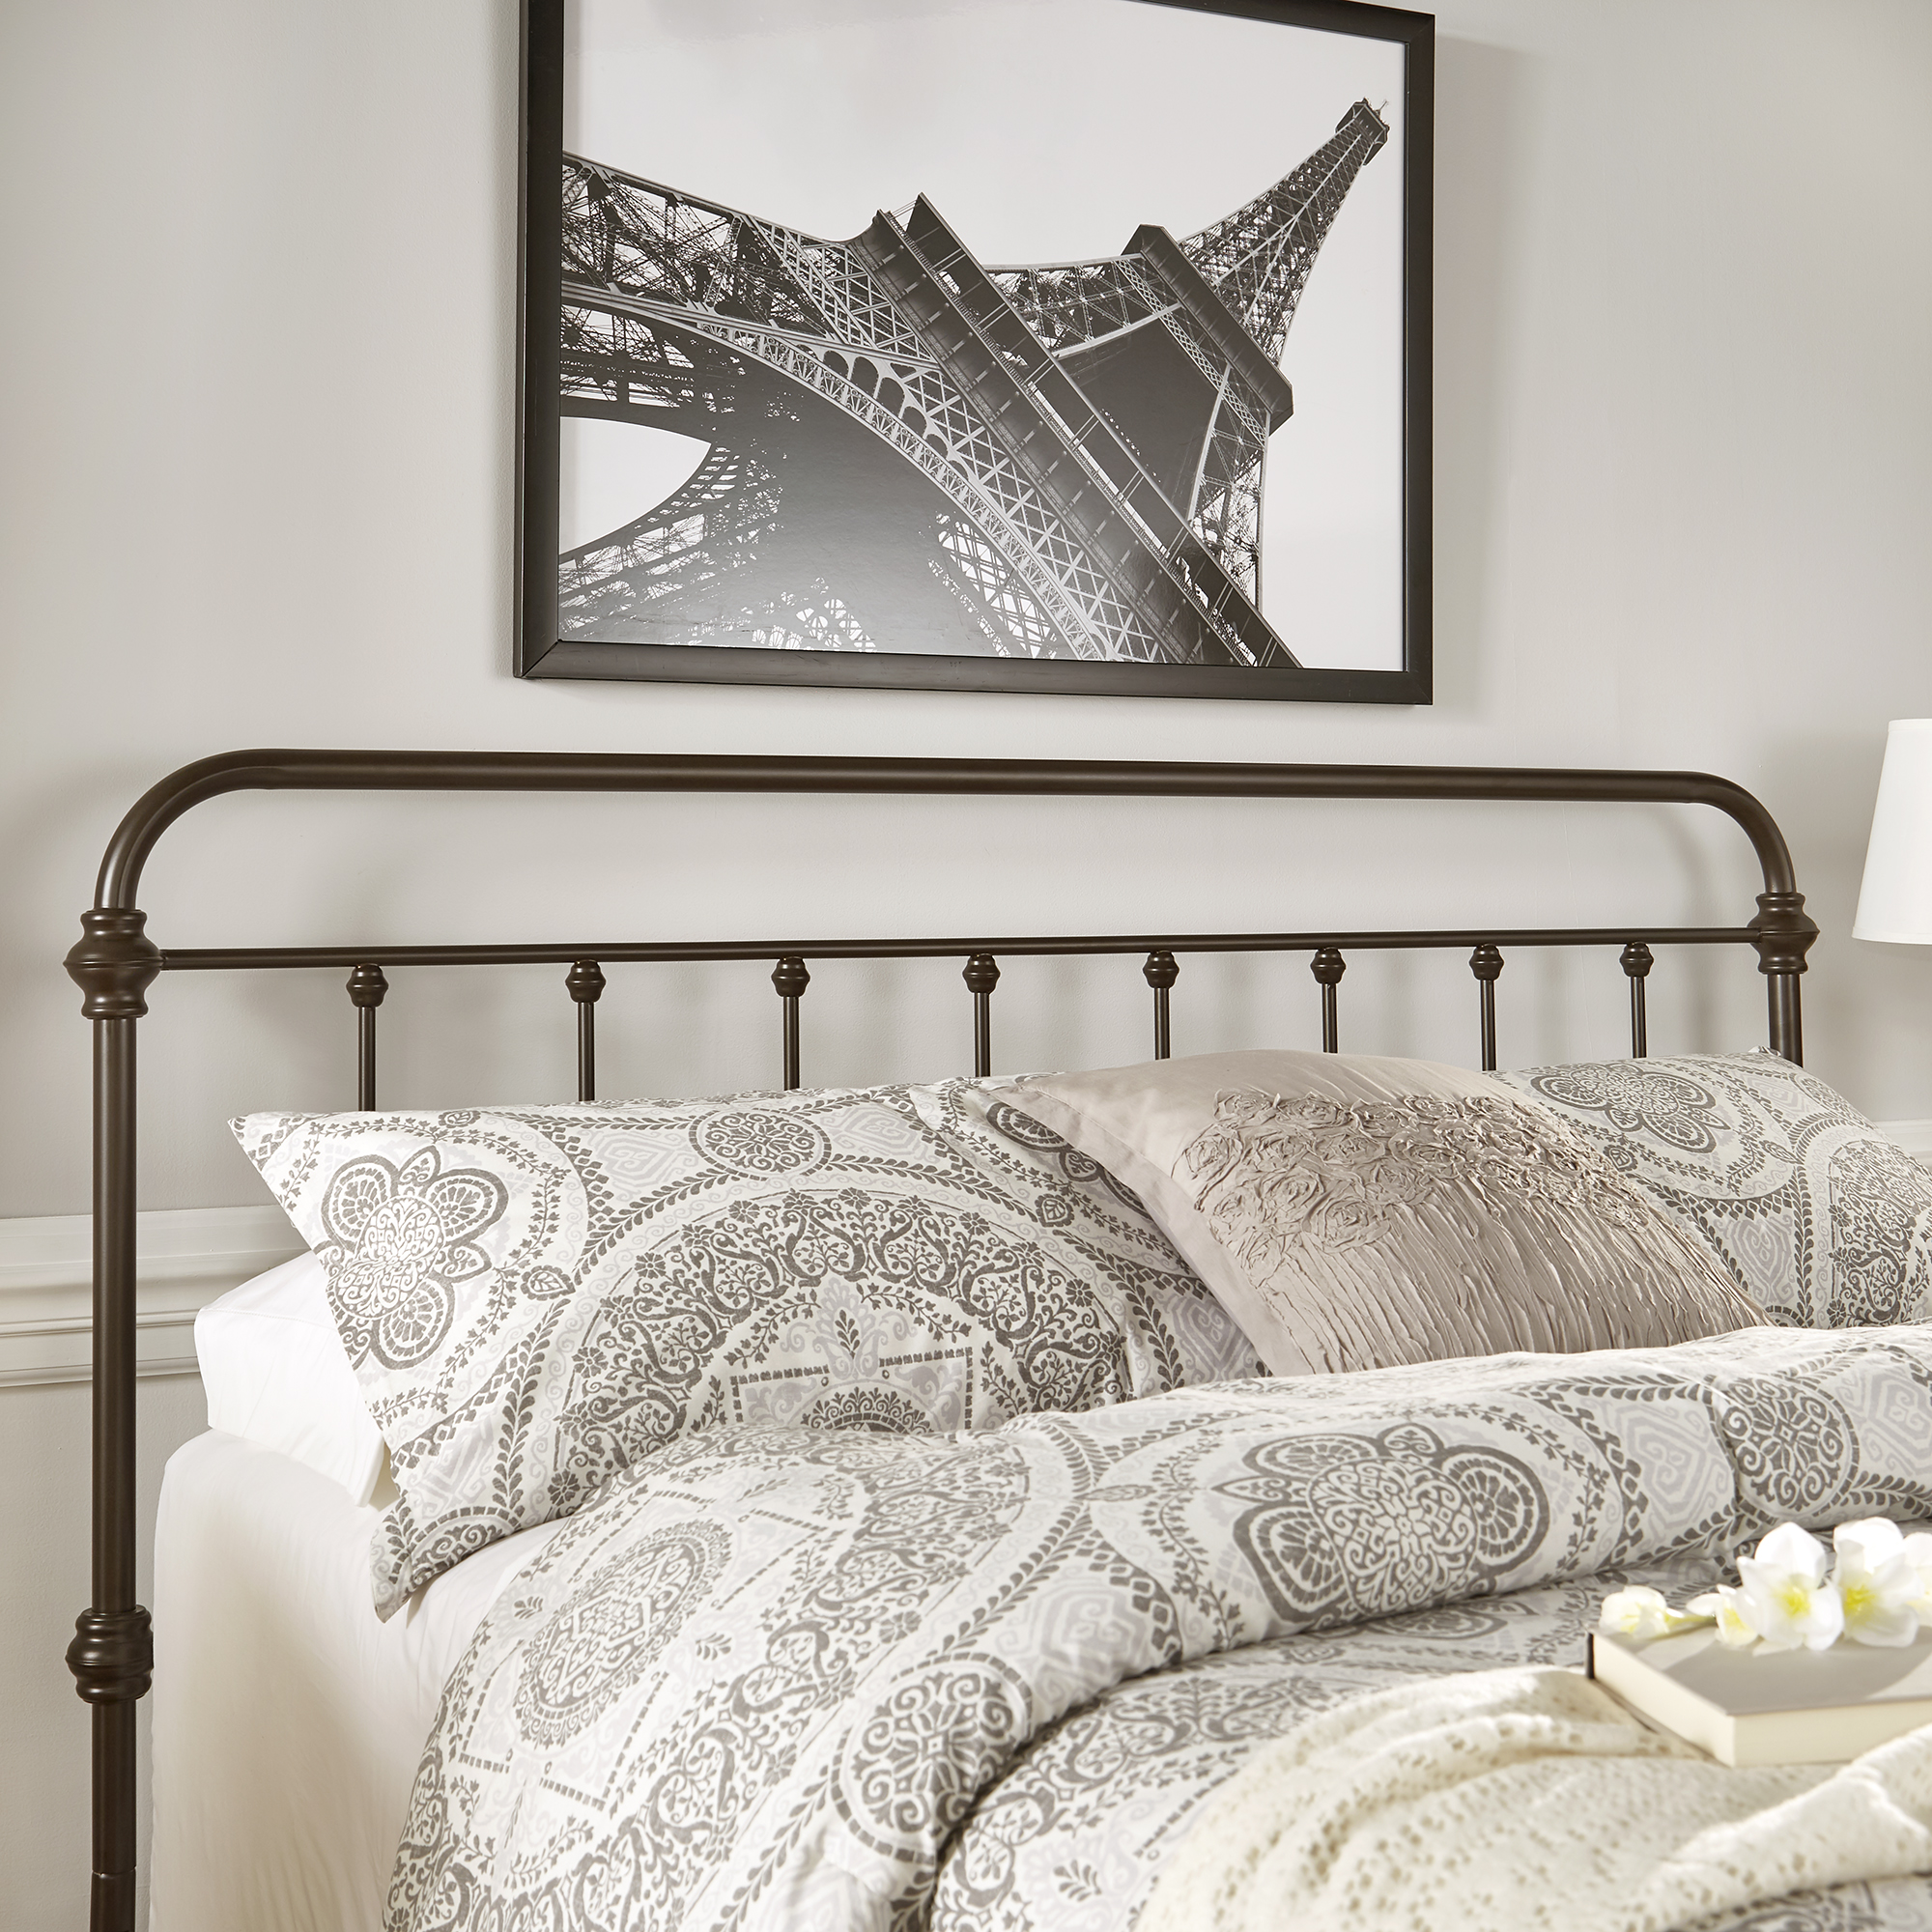 Weston Home Nottingham Spindle Headboard, Multiple Sizes and Colors